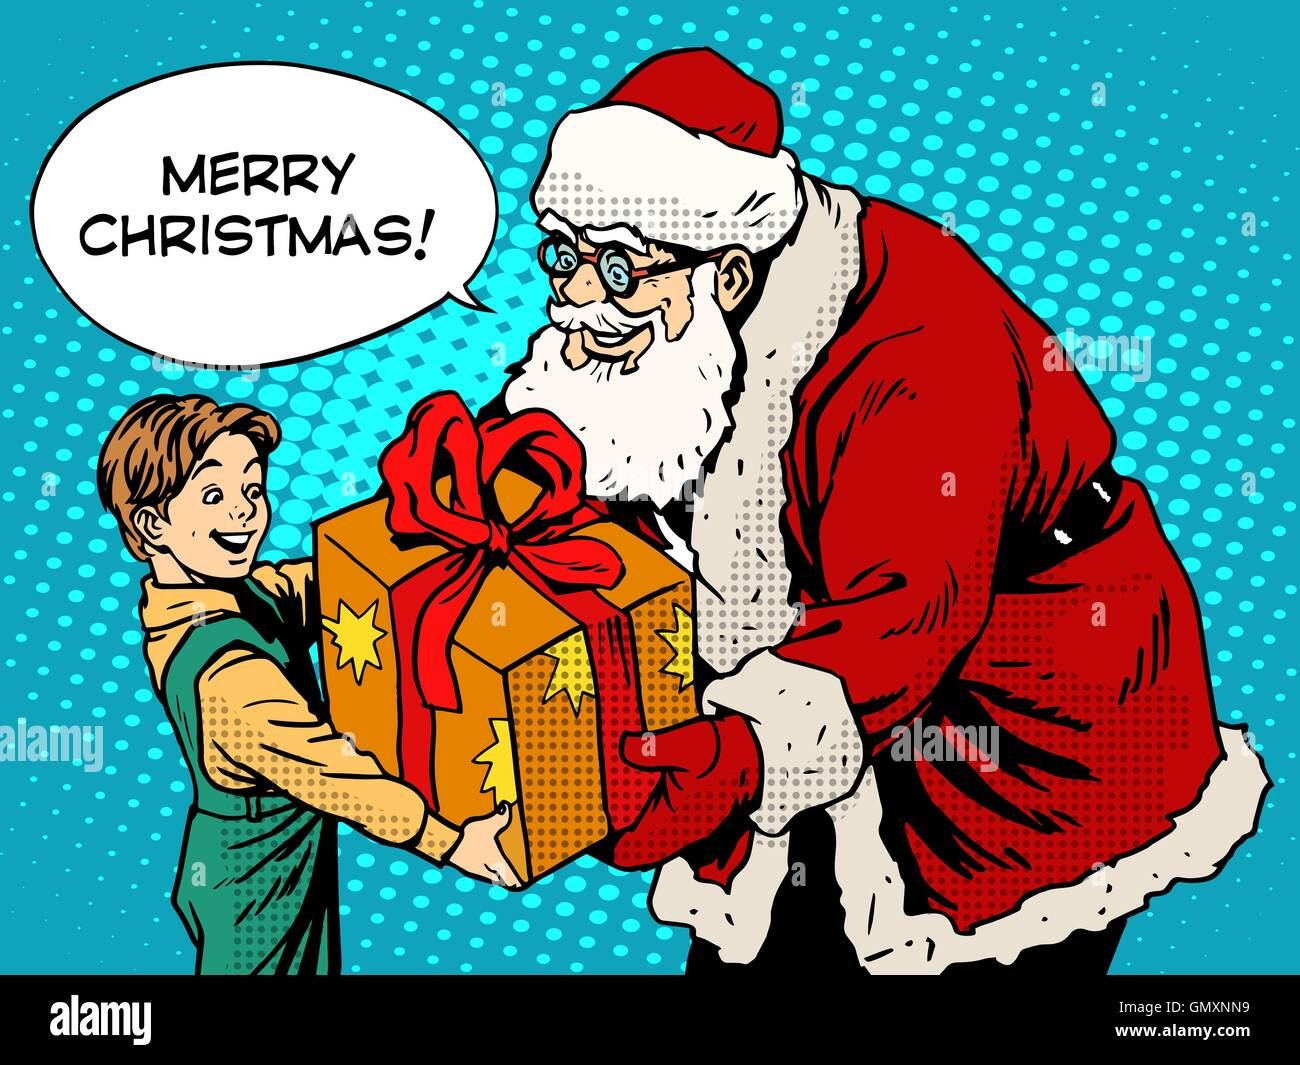 Merry Christmas Santa Claus gift gives the child - Stock Vector